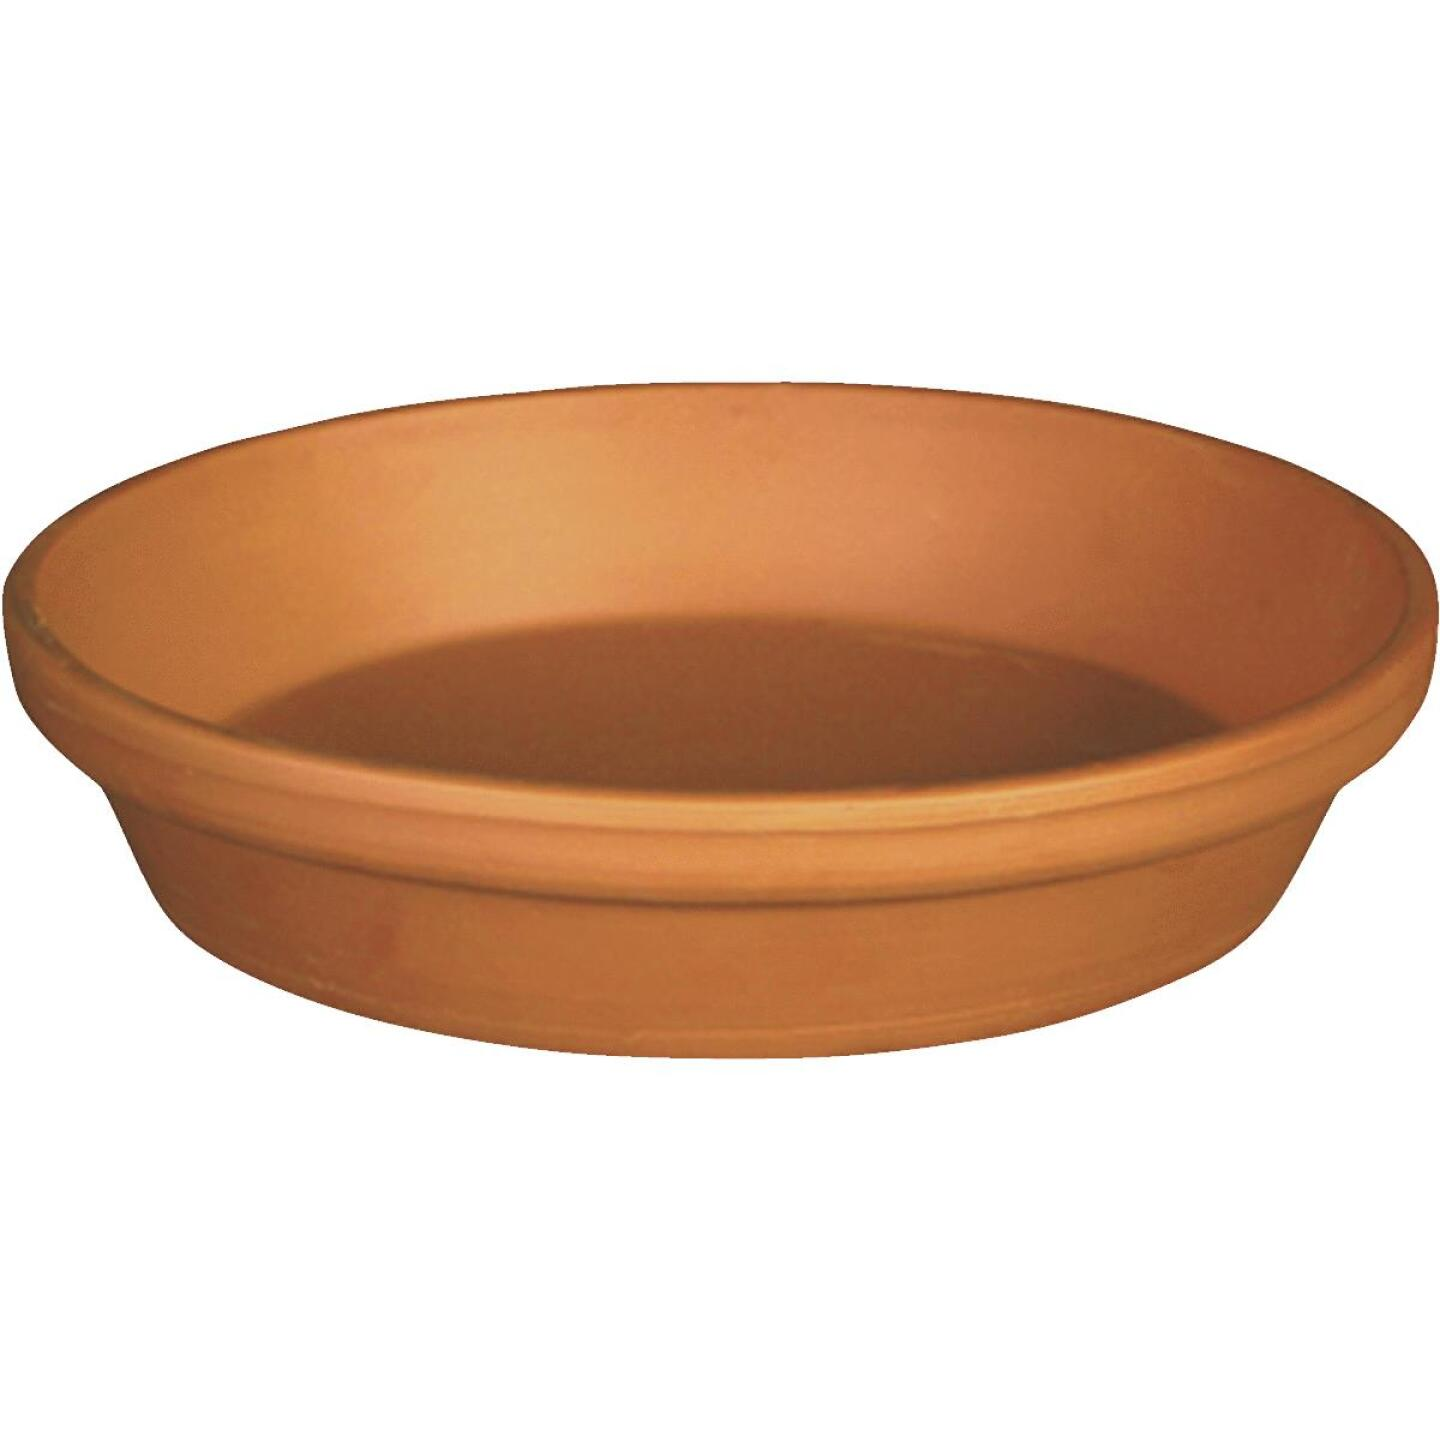 Ceramo 8 In. Terracotta Clay Standard Flower Pot Saucer Image 1